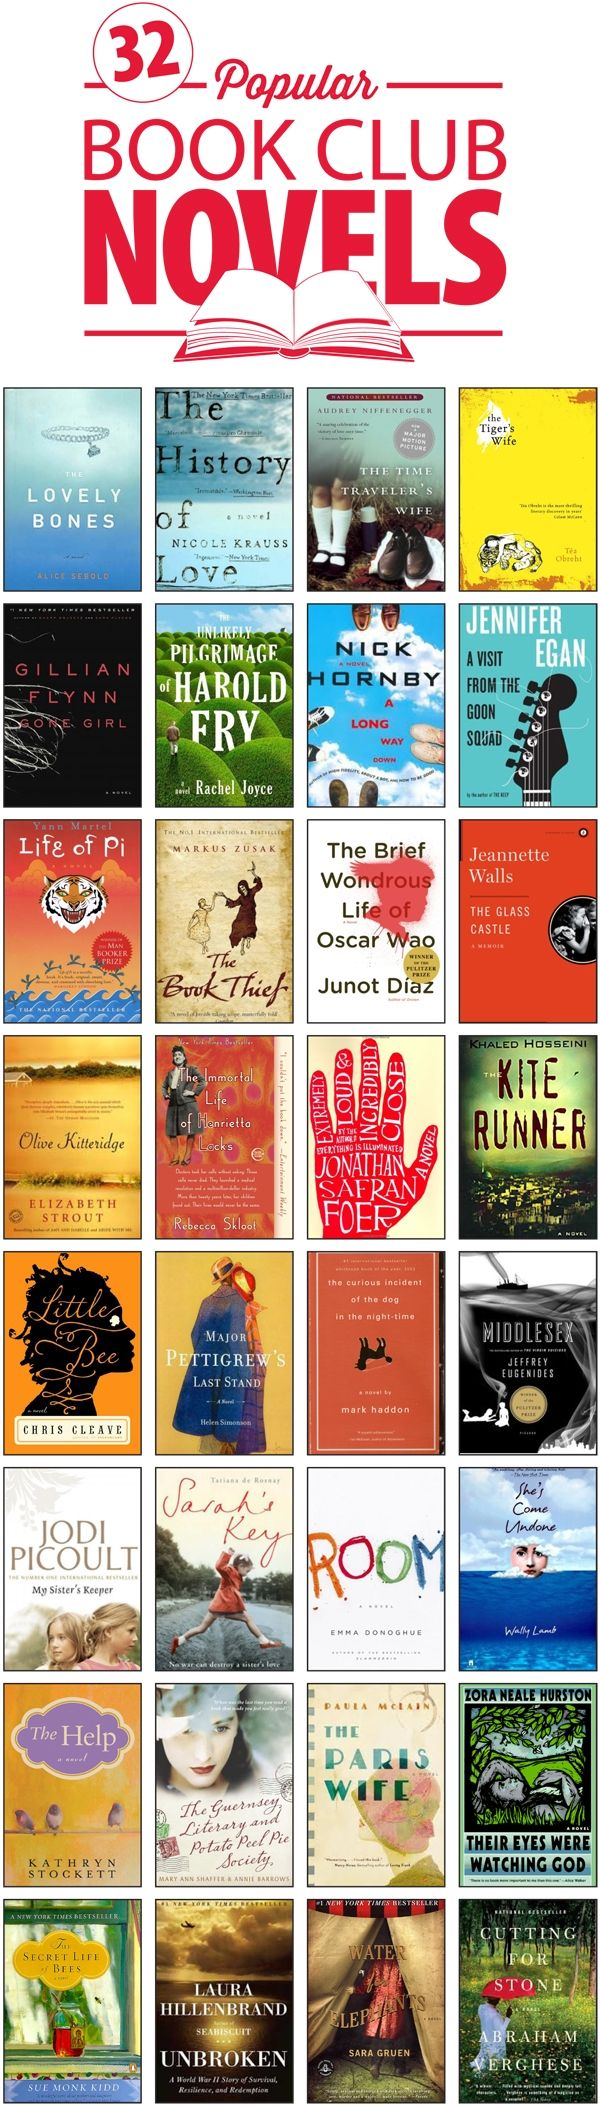 The Top 32 Popular Fiction Books for Book Clubs. Of the 32, I have read a total of 4. I already have 12 of the books on the list, but haven't read them yet. There are 2 books on the list that I tried to read, but couldn't get through. Finally, several of the remaining 14 books on this list are ones that I would like to read in the future. Overall, a great list!